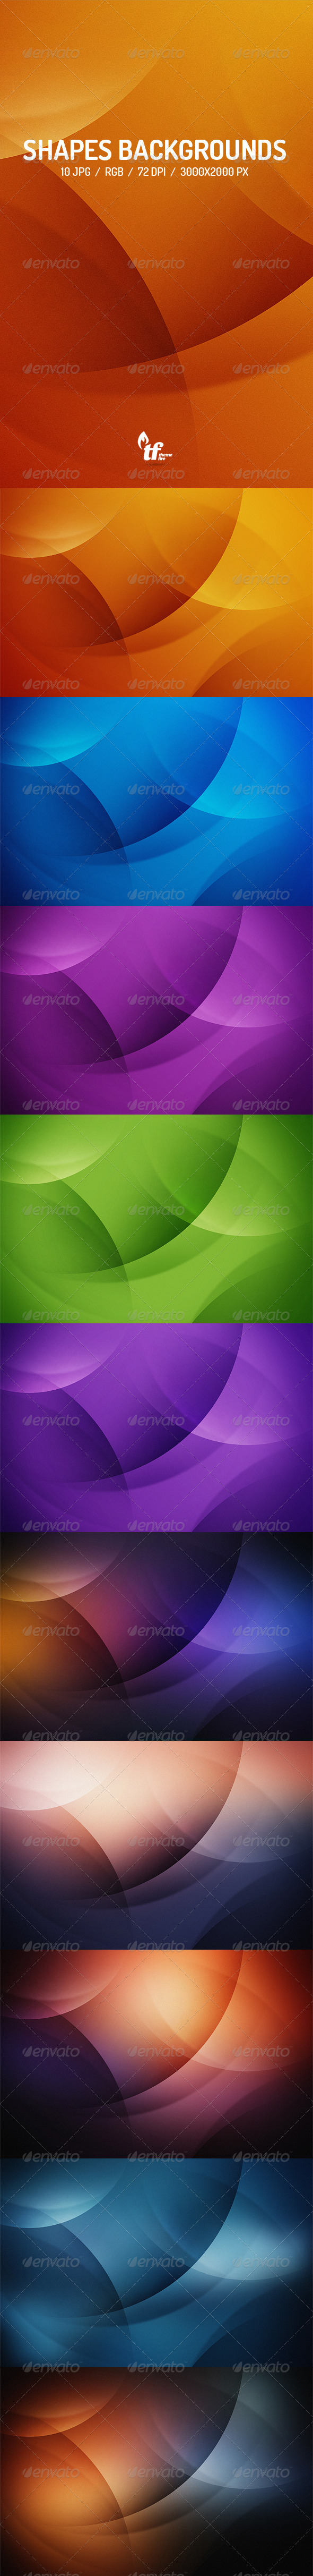 GraphicRiver Shapes Backgrounds 7812806